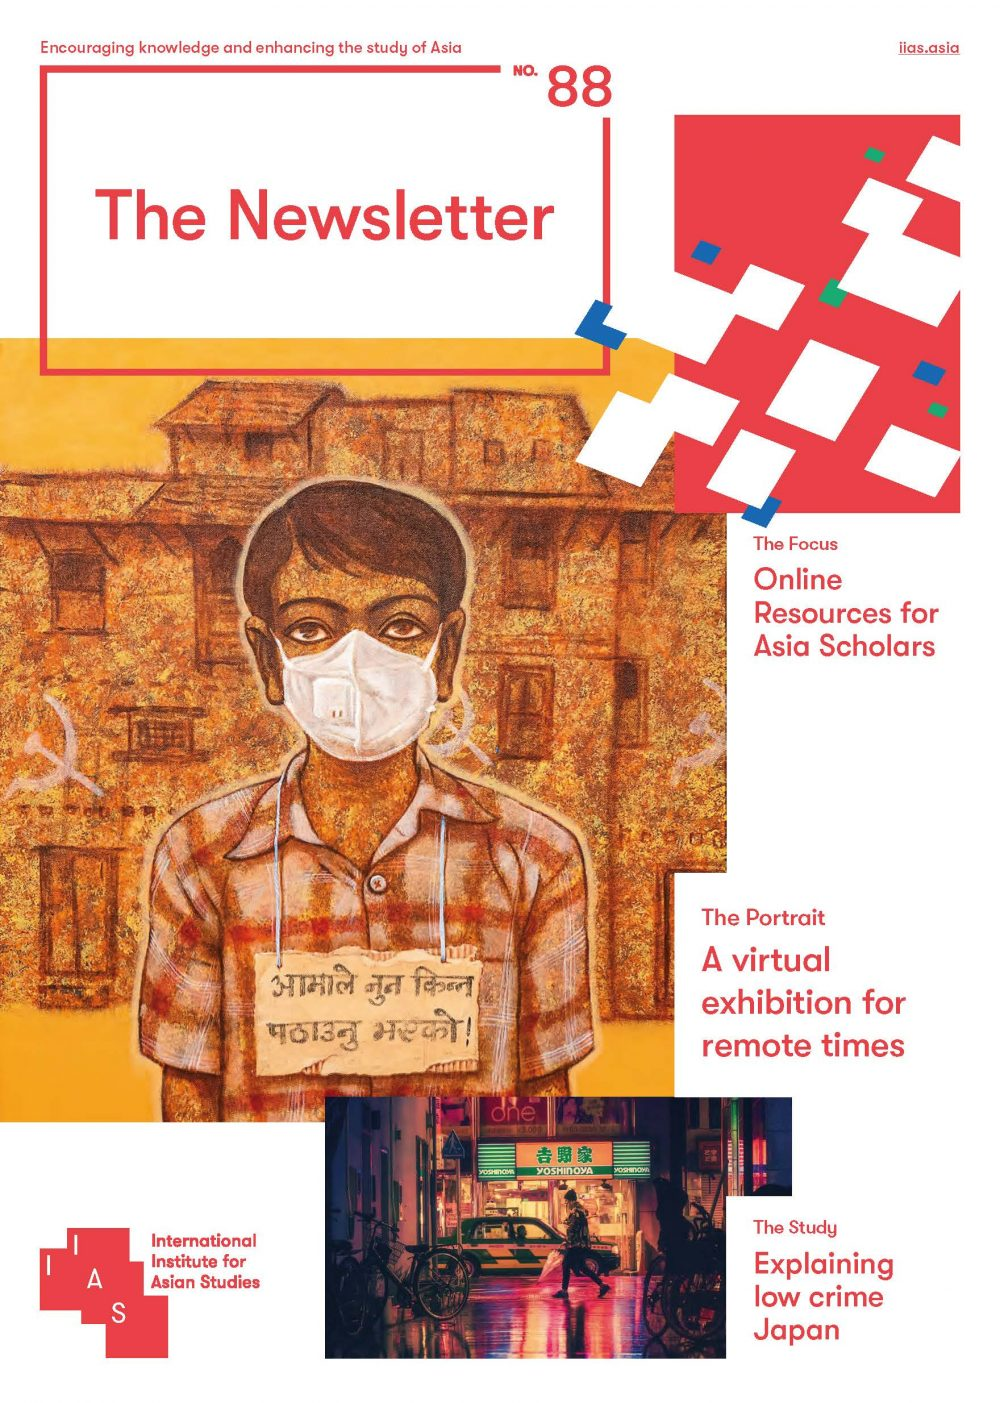 IIAS The Newsletter Vol. 88- News from Northeast Asia